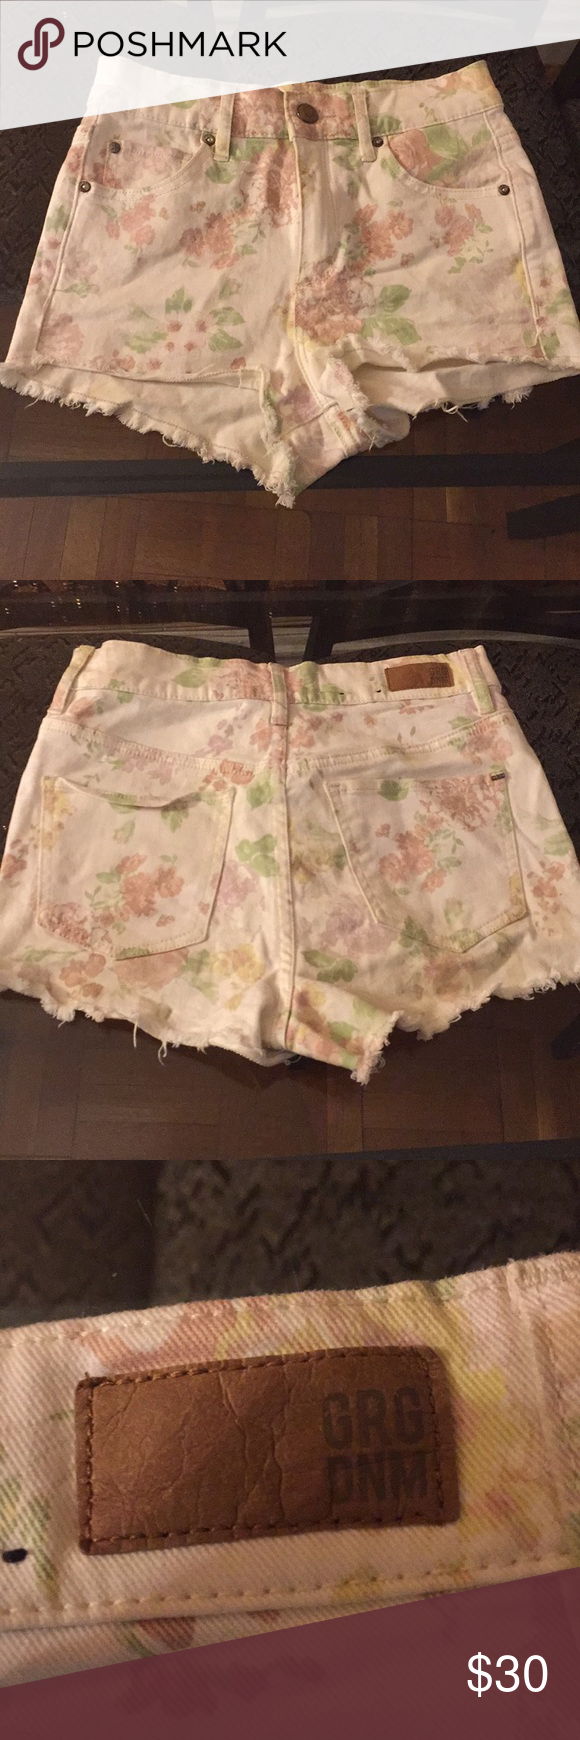 43971d5e6b Garage floral print shorts I'm also on Vinted and ♏️ercari (better shipping  prices) Size: 0 No stains only worn once Floral print shorts with frayed  ends ...